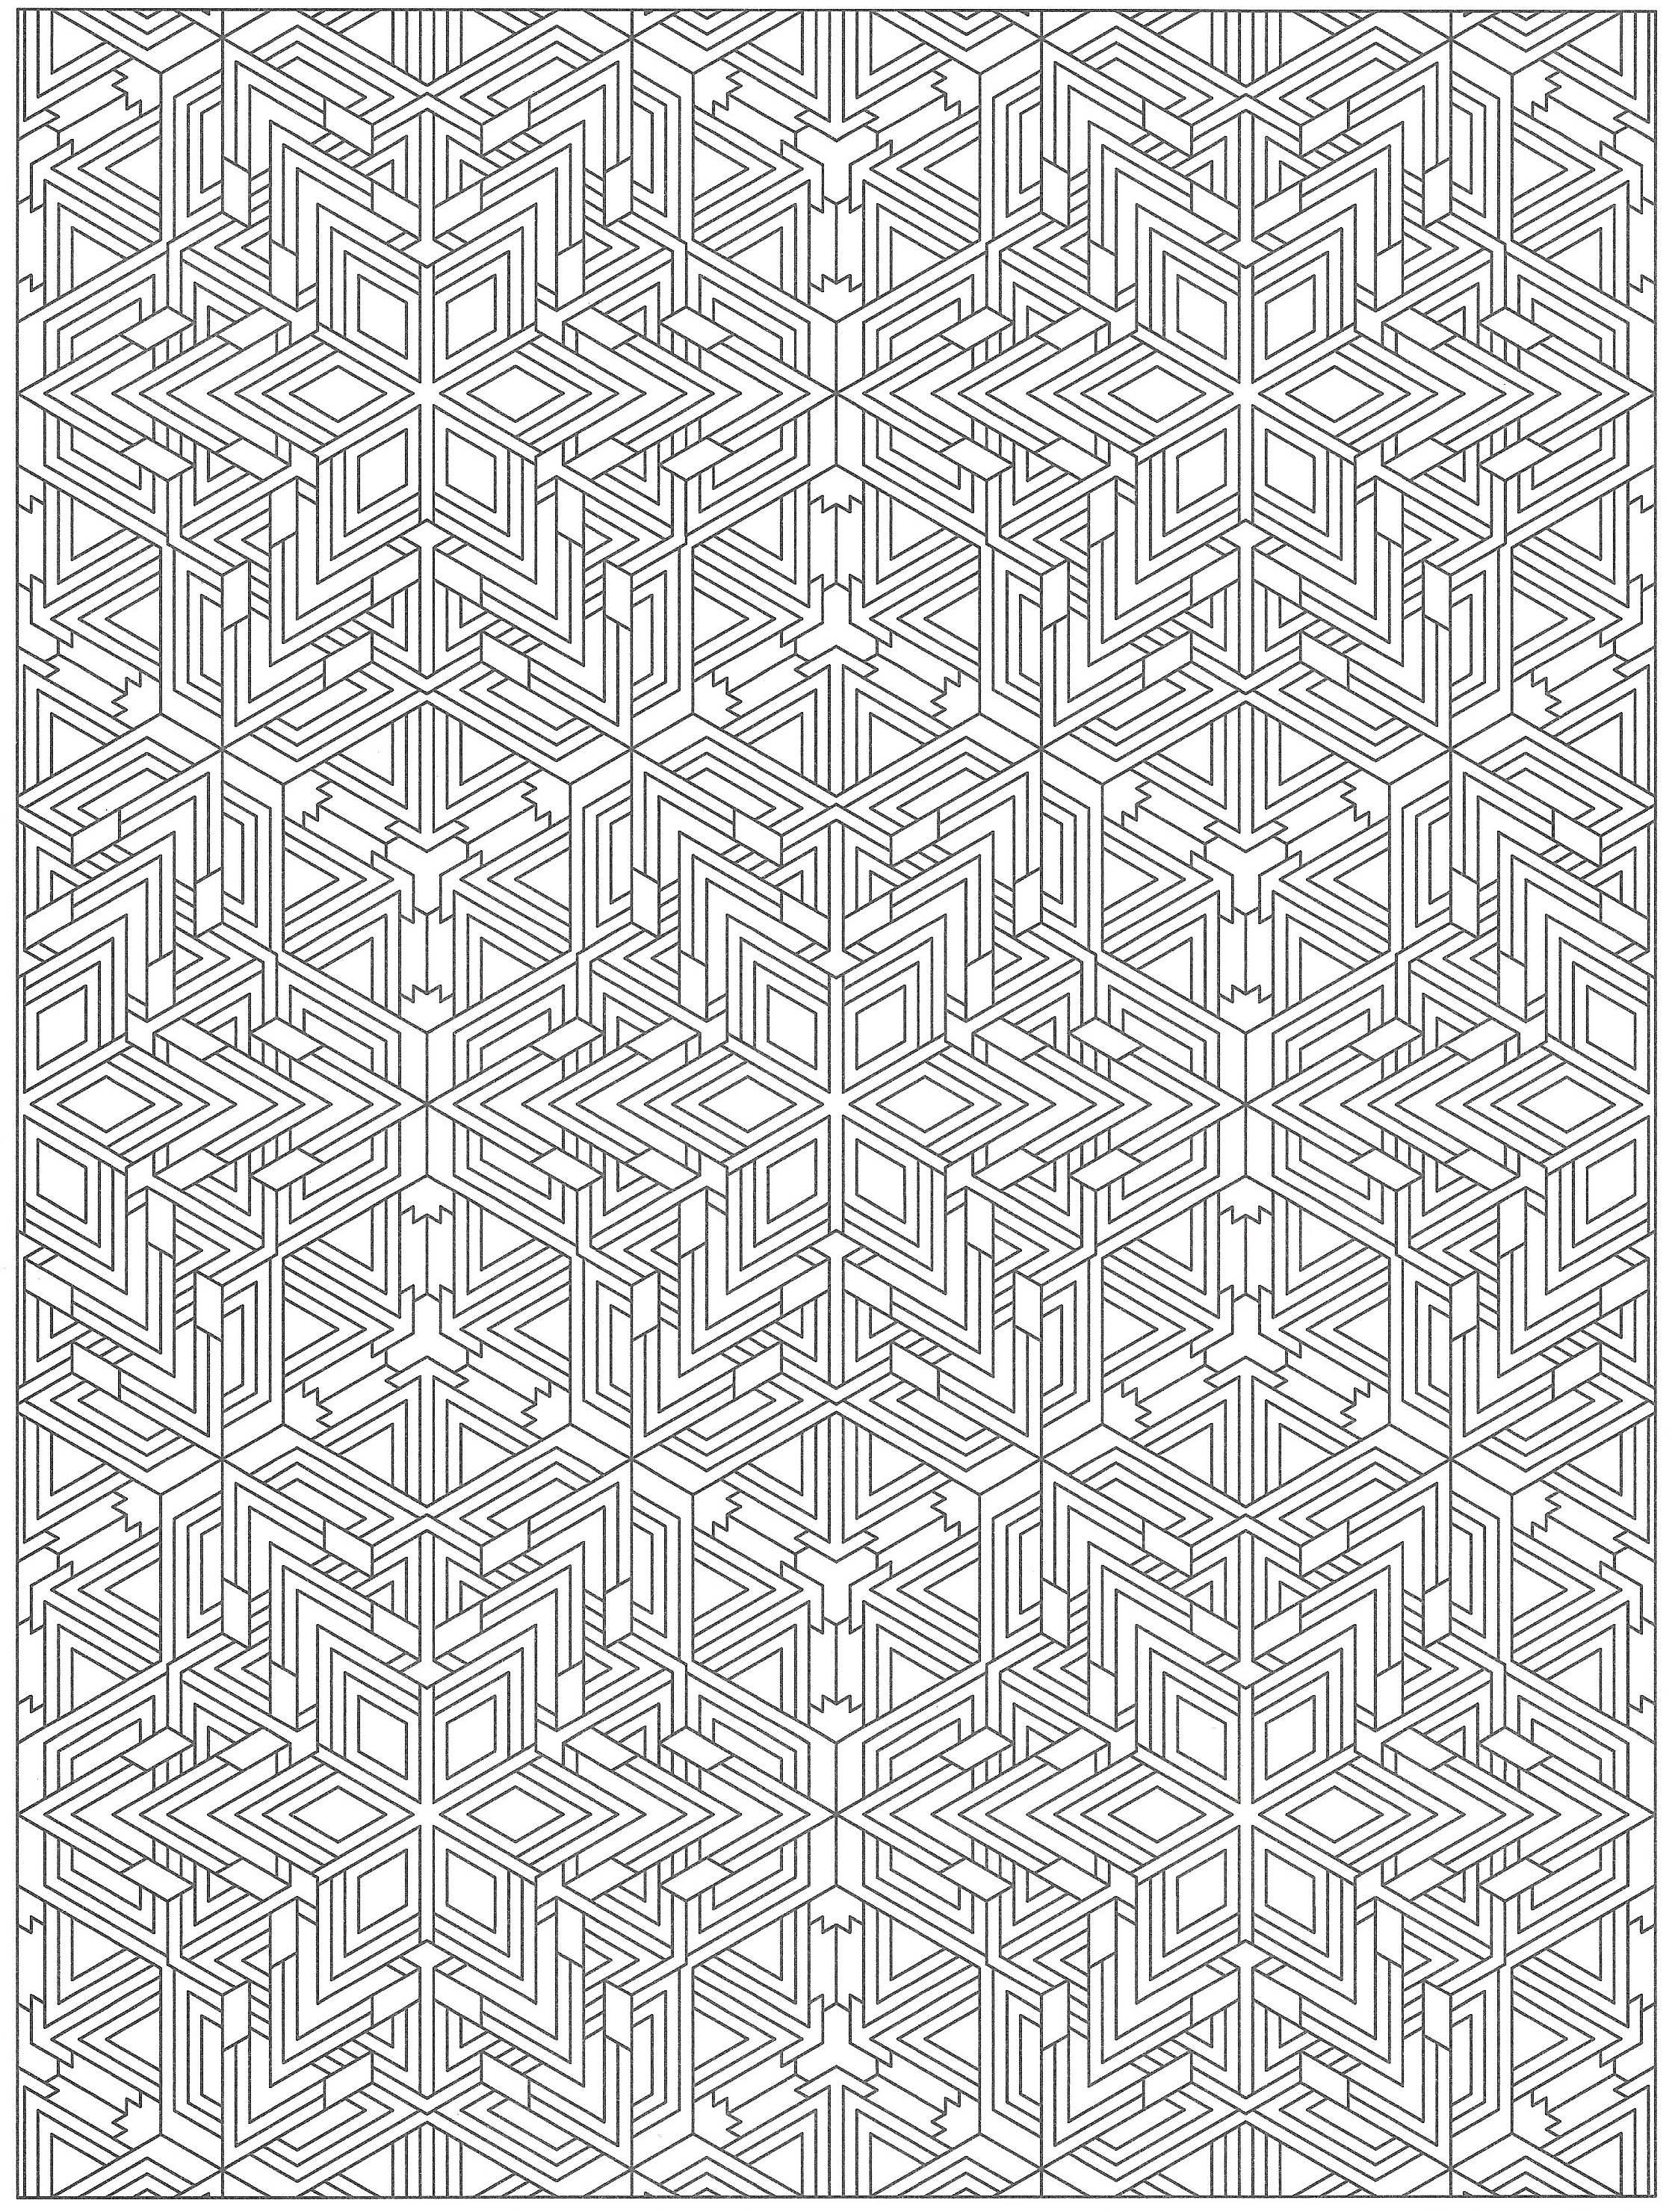 Creative Haven Tessellations Coloring Page Zentangle Patterns And